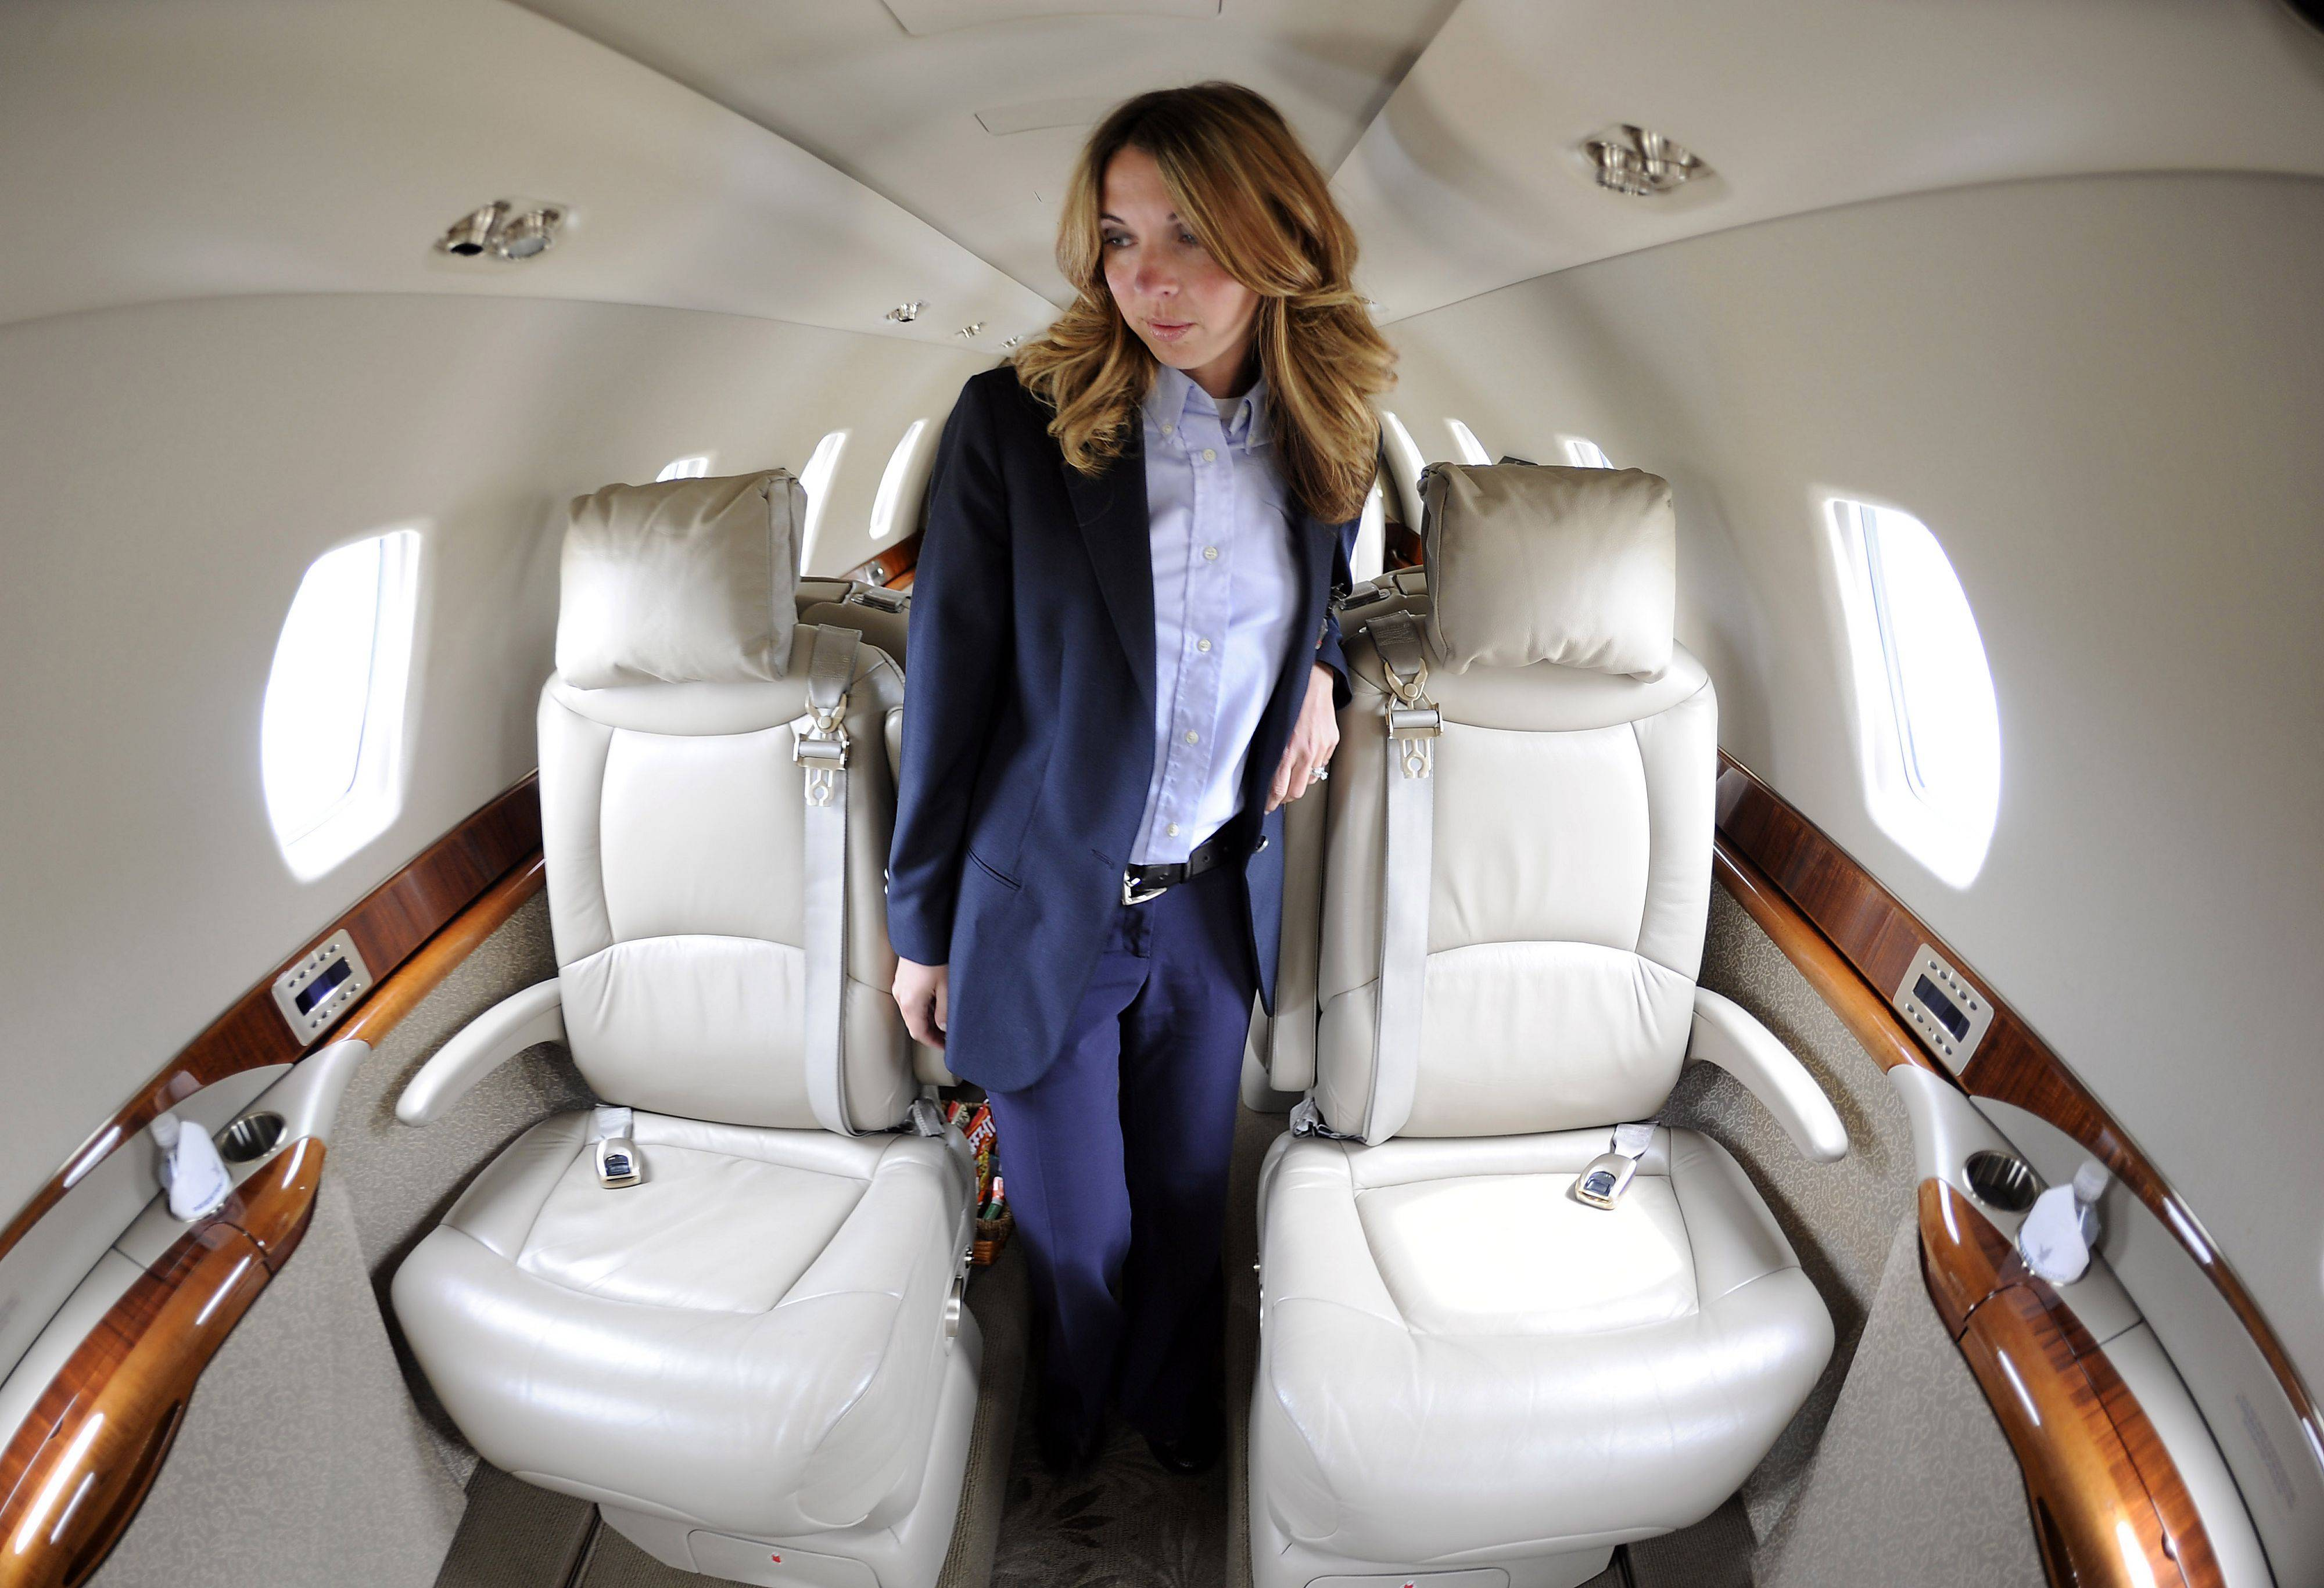 Wheeling  jet pilot Amanda Sorenson caters to rich